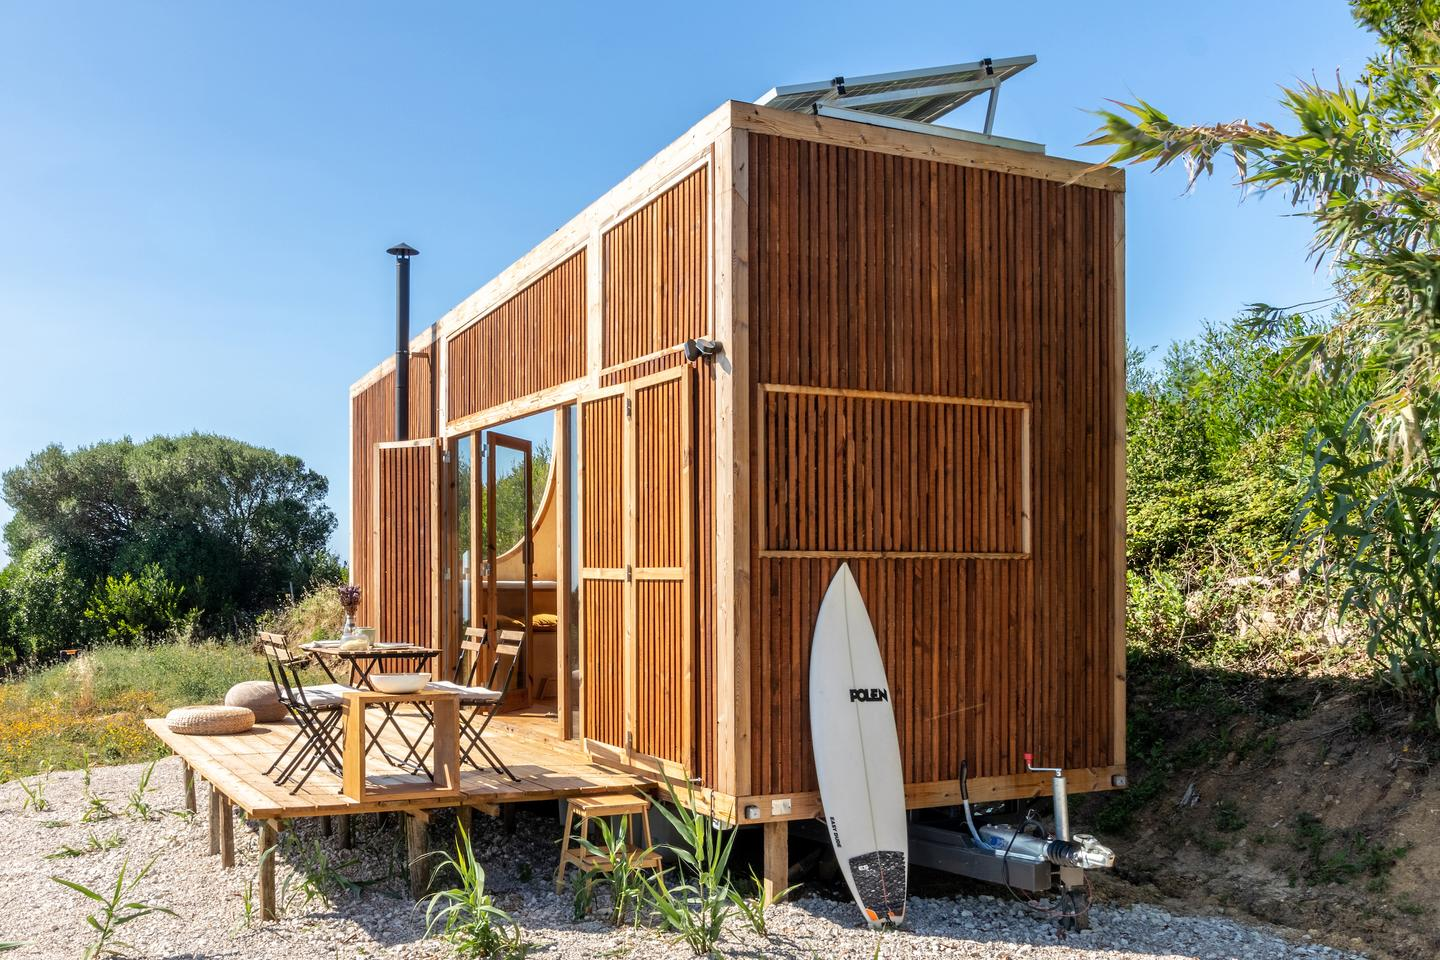 The Ursa features a small deck area outside to increase living space